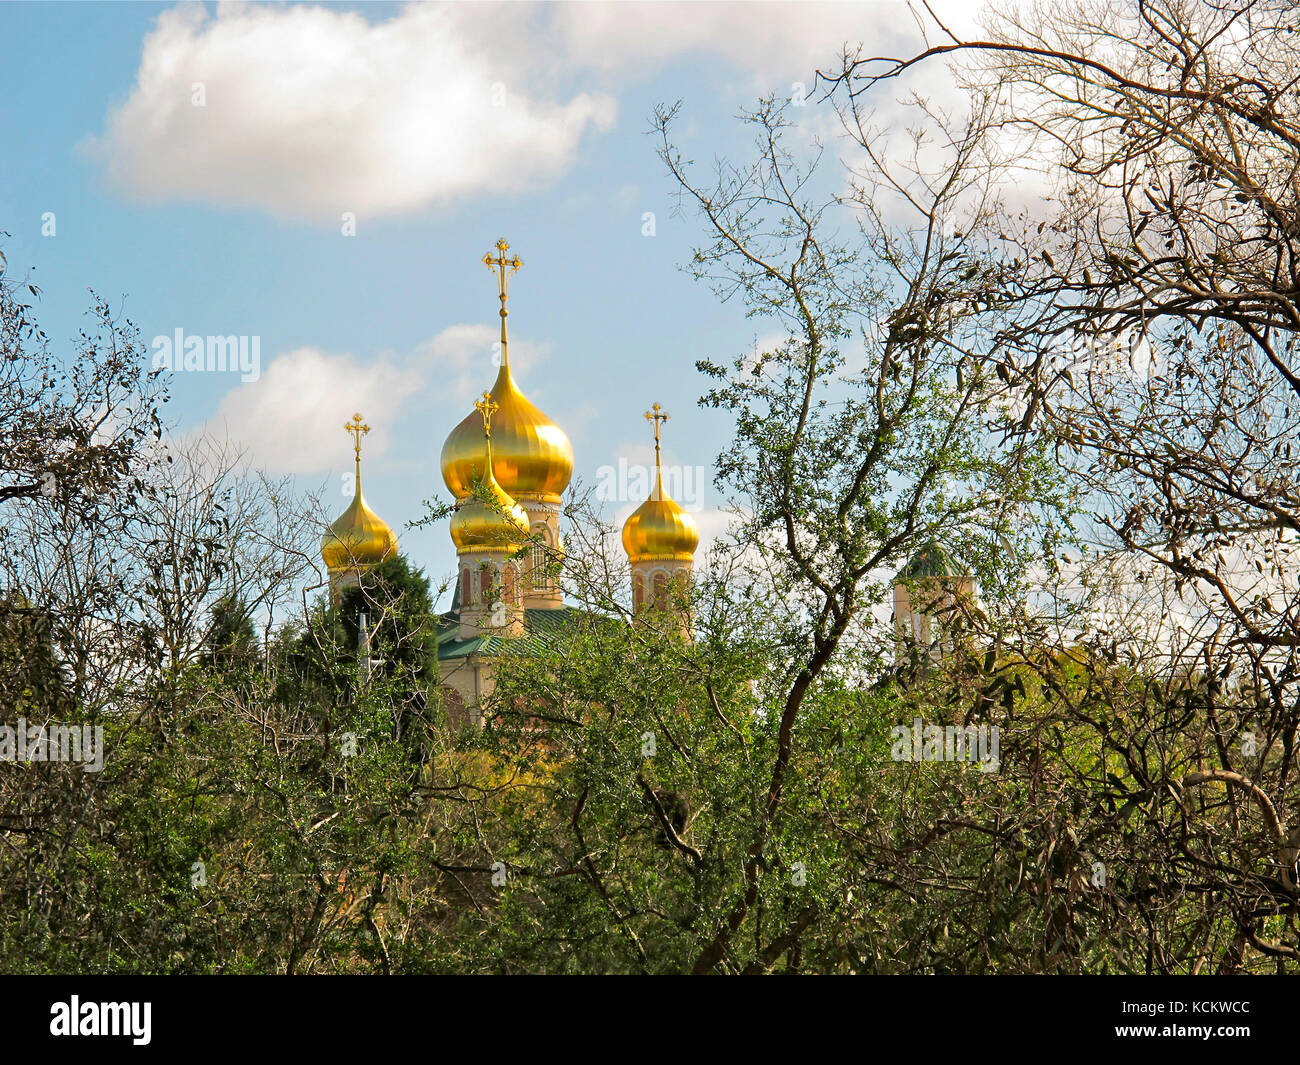 Protection of the Mother of God Church, a Russian Orthodox